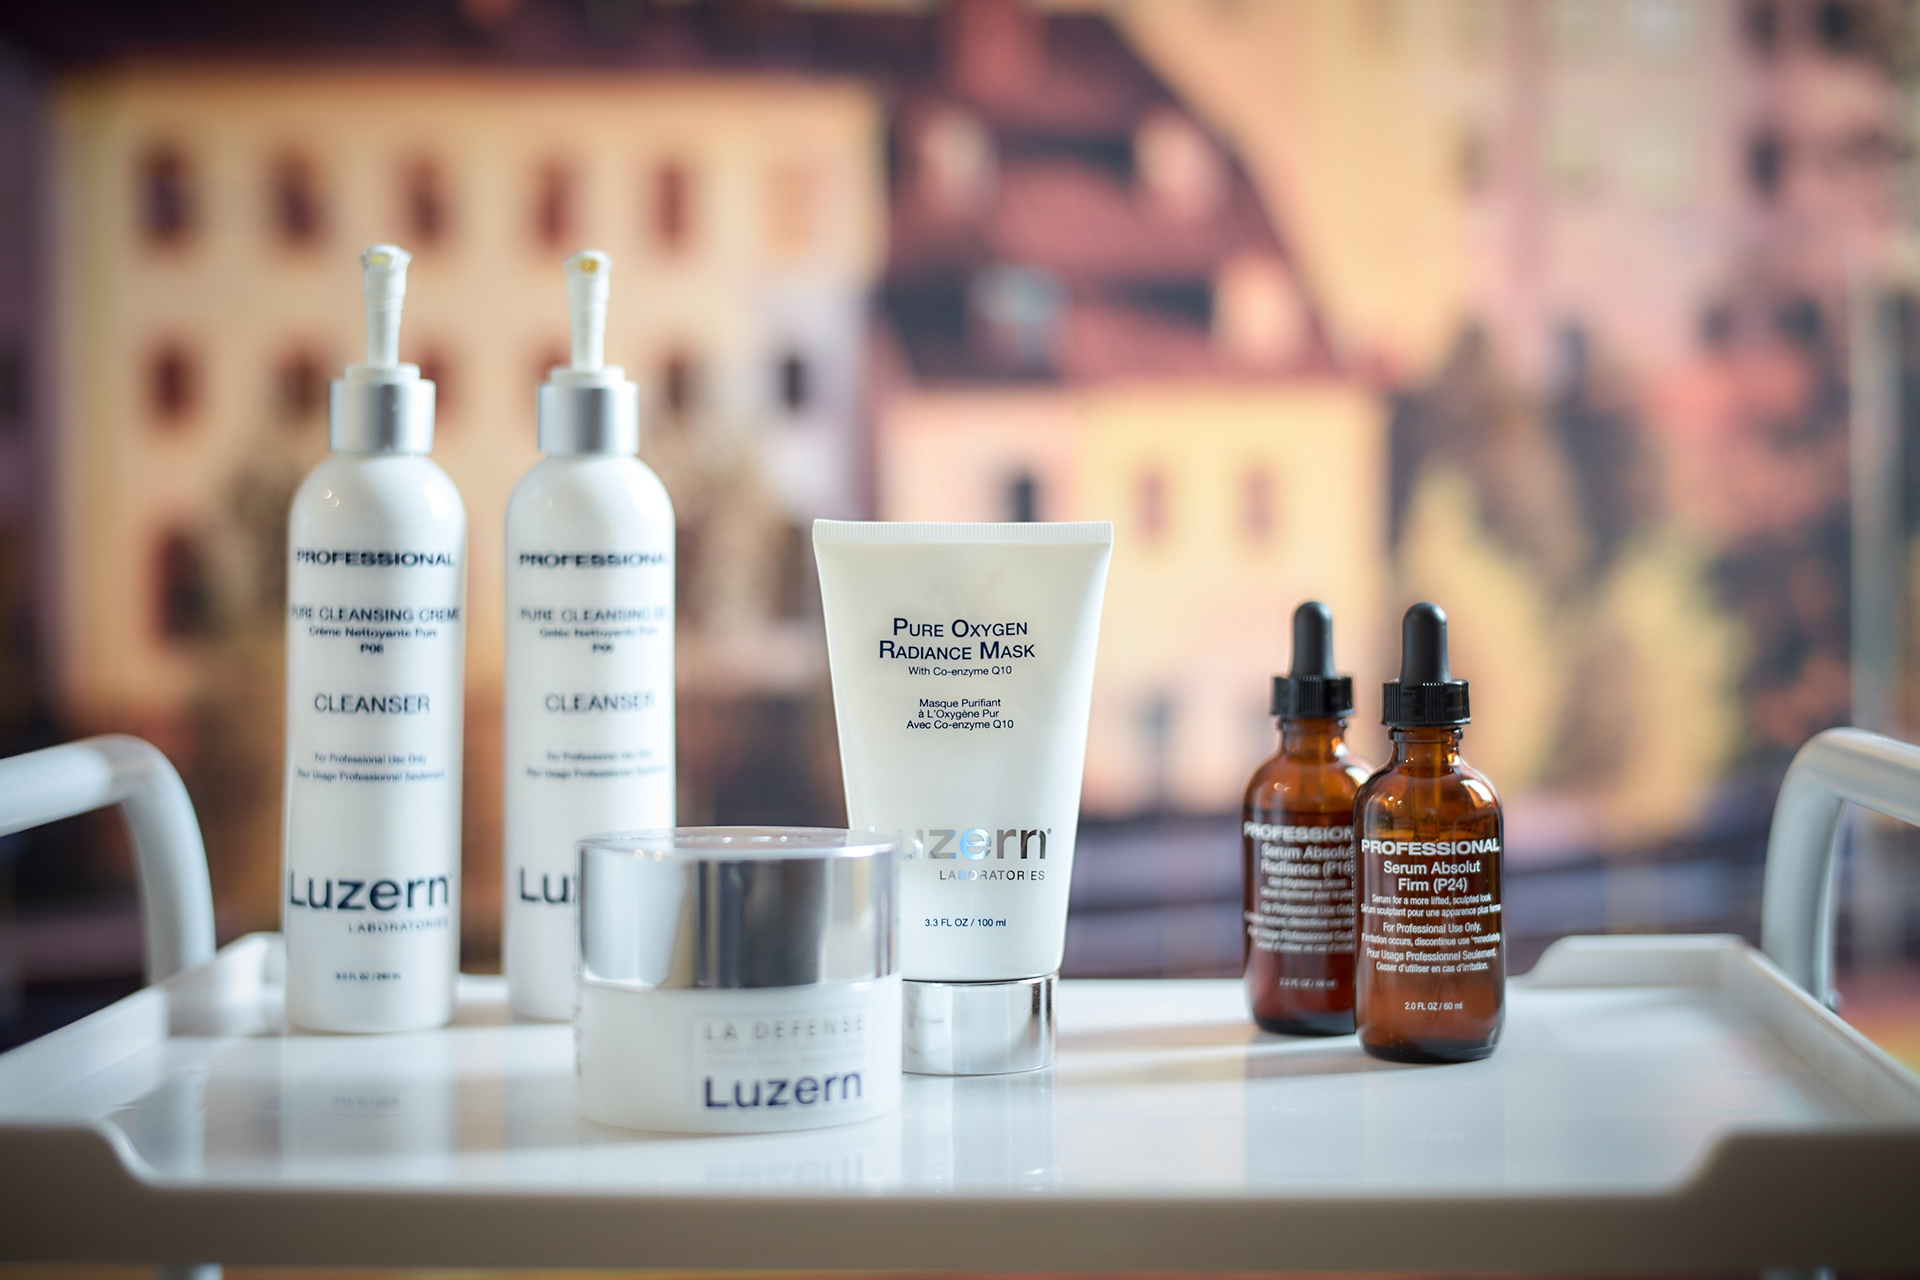 An exceptional facial care treatment that plumps up the skin and relaxes the body